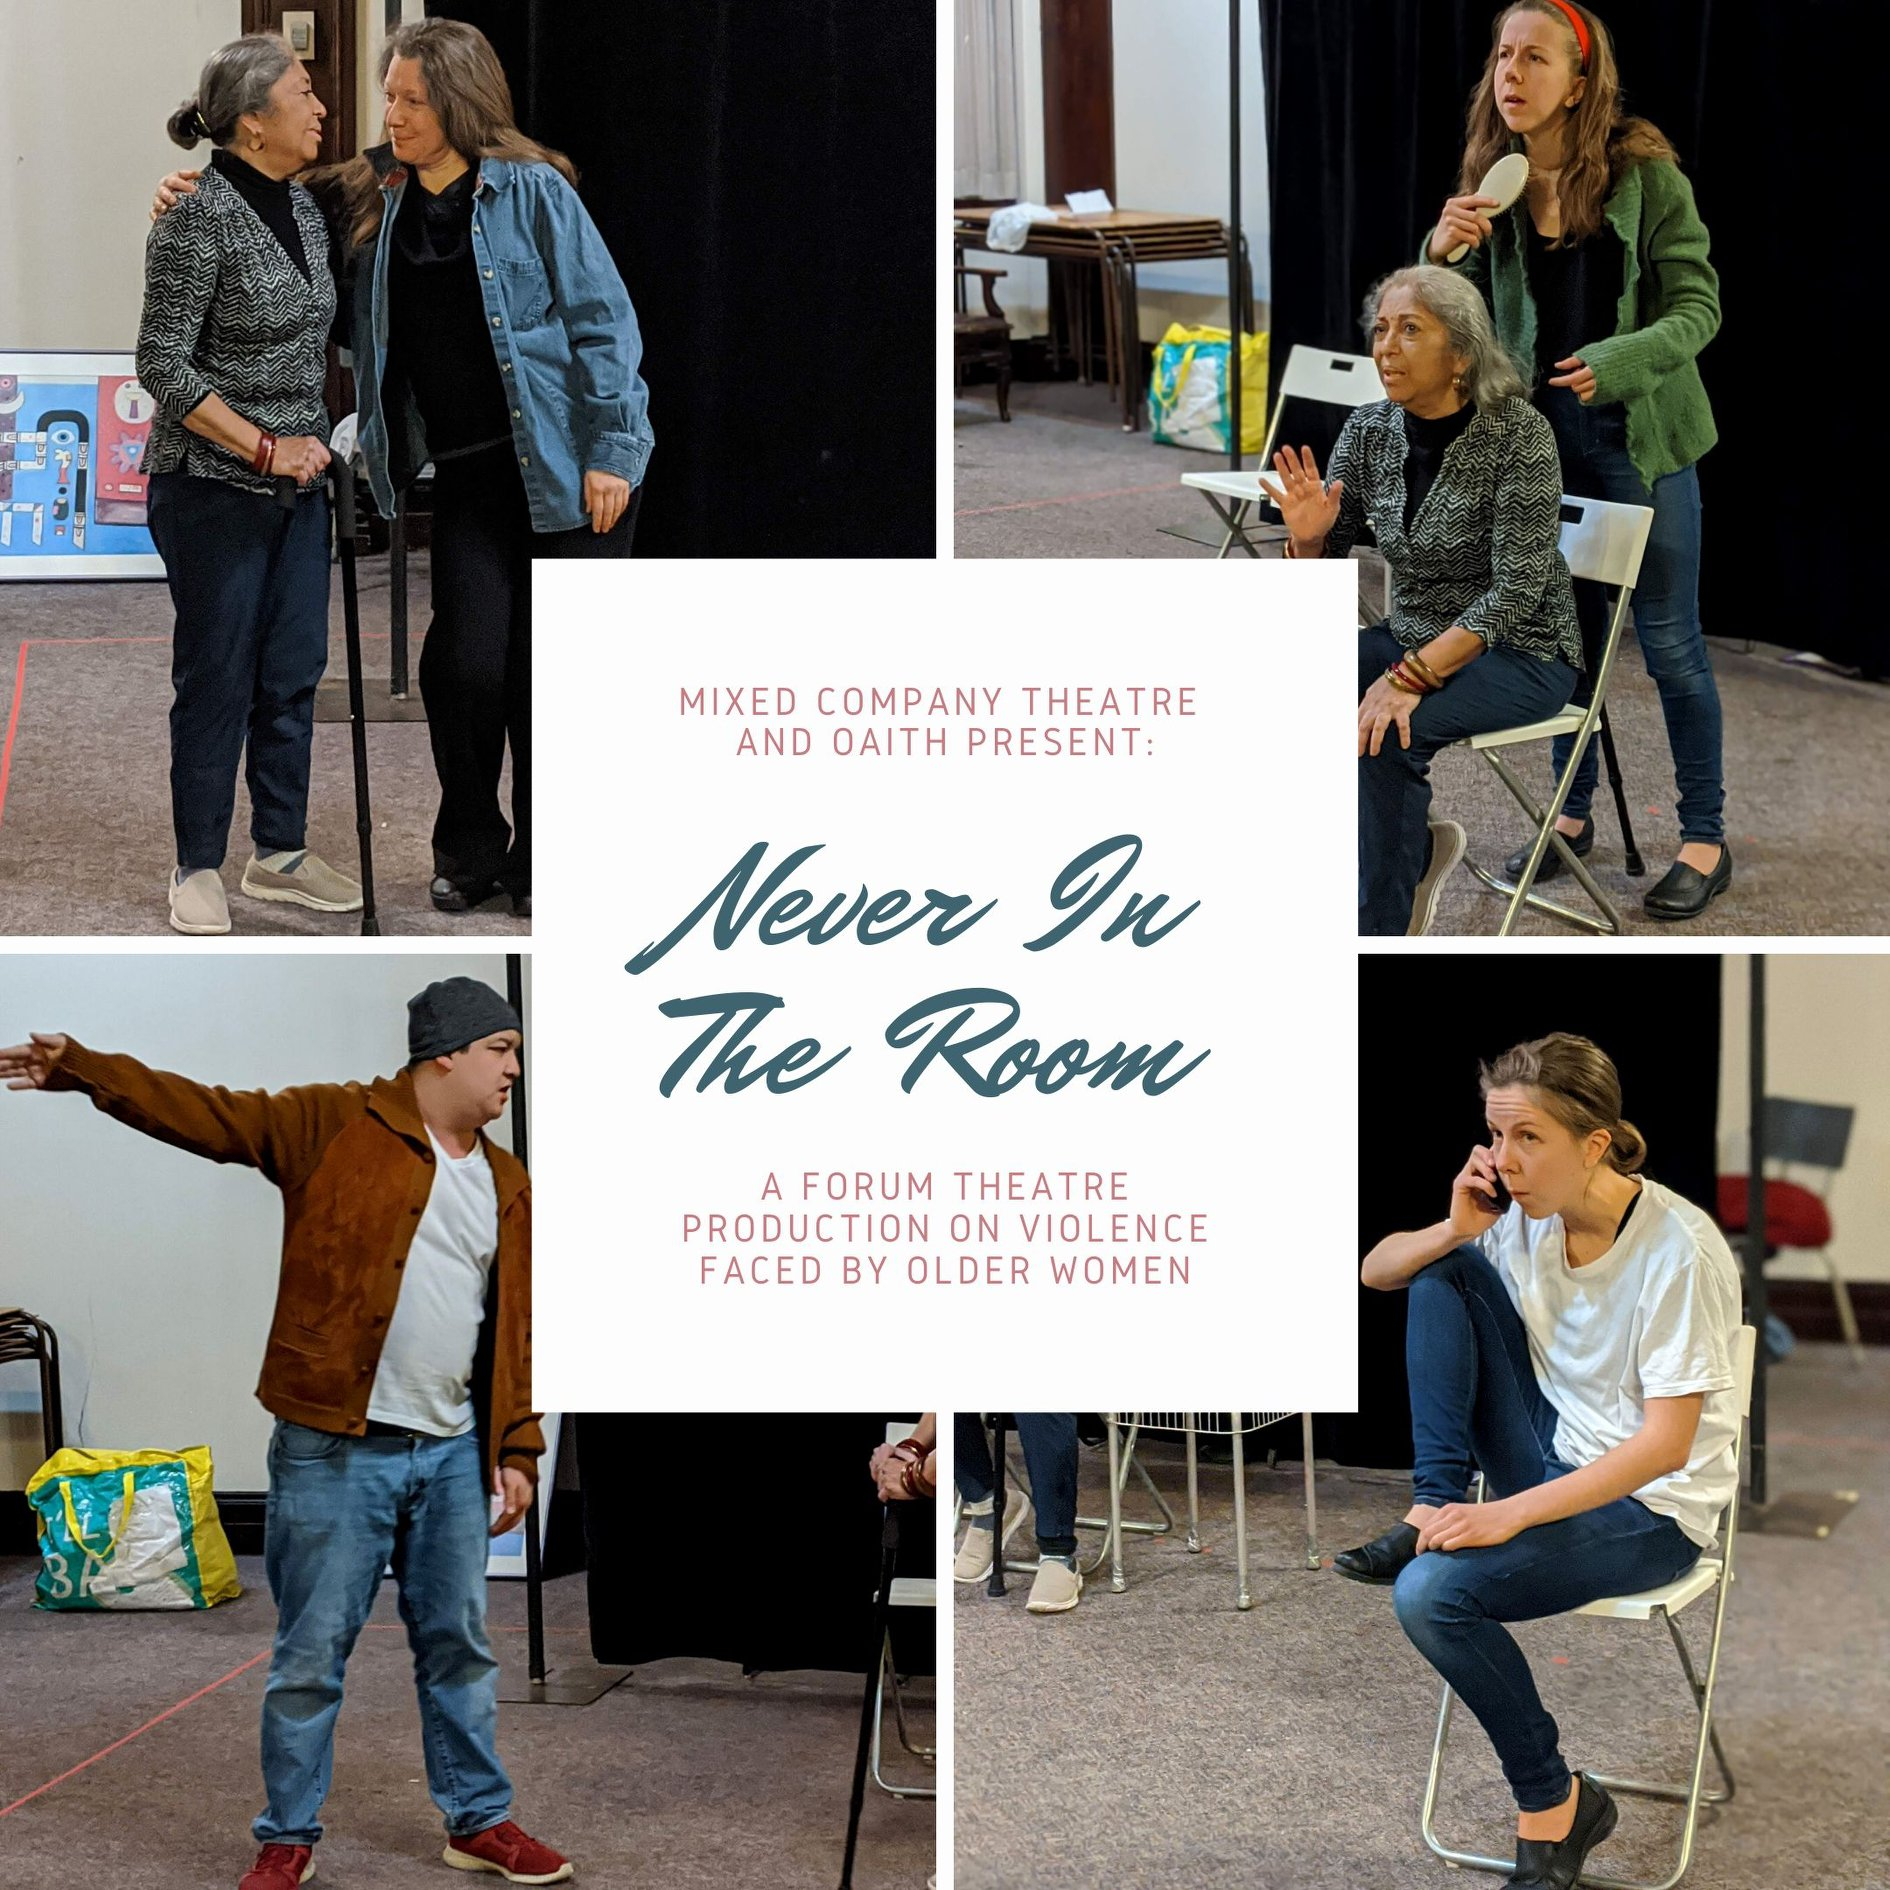 """In each corner is a different photo from """"Never in the Room"""". In the top left corner is one person hugging another person's shoulders. In the top right corner an older adult is sitting in a chair with their hand stretched out in a """"stop"""" motion. A younger person stands behind the chair. In the bottom left corner is a person pointing behind themselves. In the bottom right corner is a person sitting on a chair, talking on the phone. In the middle of the page is a white box with the project title."""